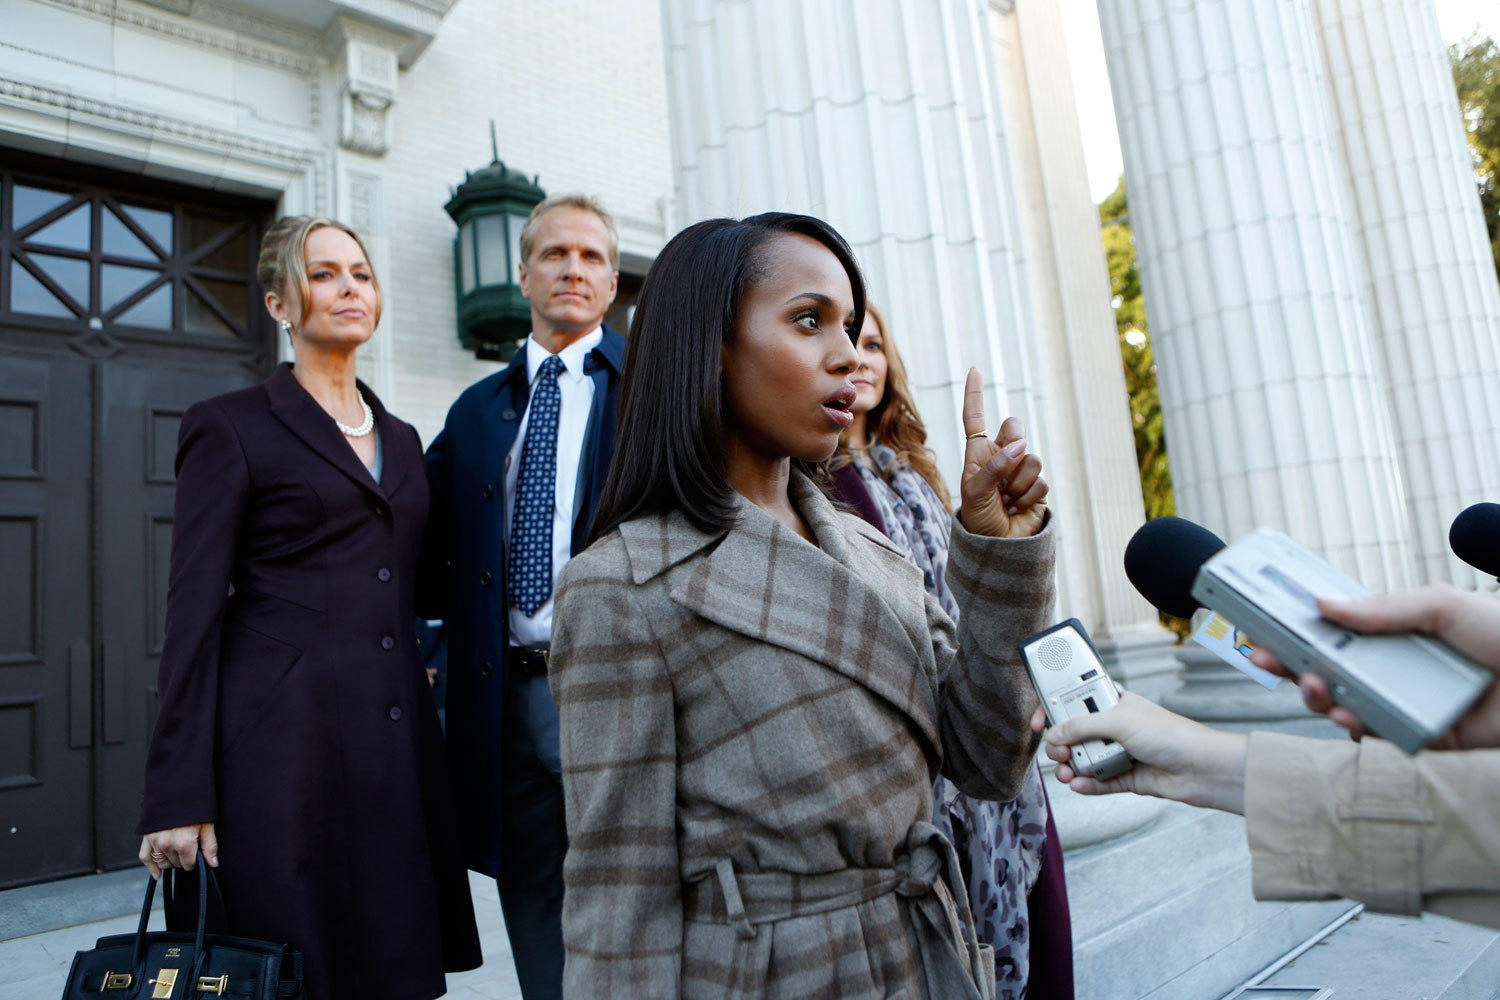 <b><i>Scandal</i>, 2012-present:</b> Washington shot to superstardom as Olivia Pope on the addictive D.C. drama. Pope is the head of a crisis management firm who gets entangled in White House drama.